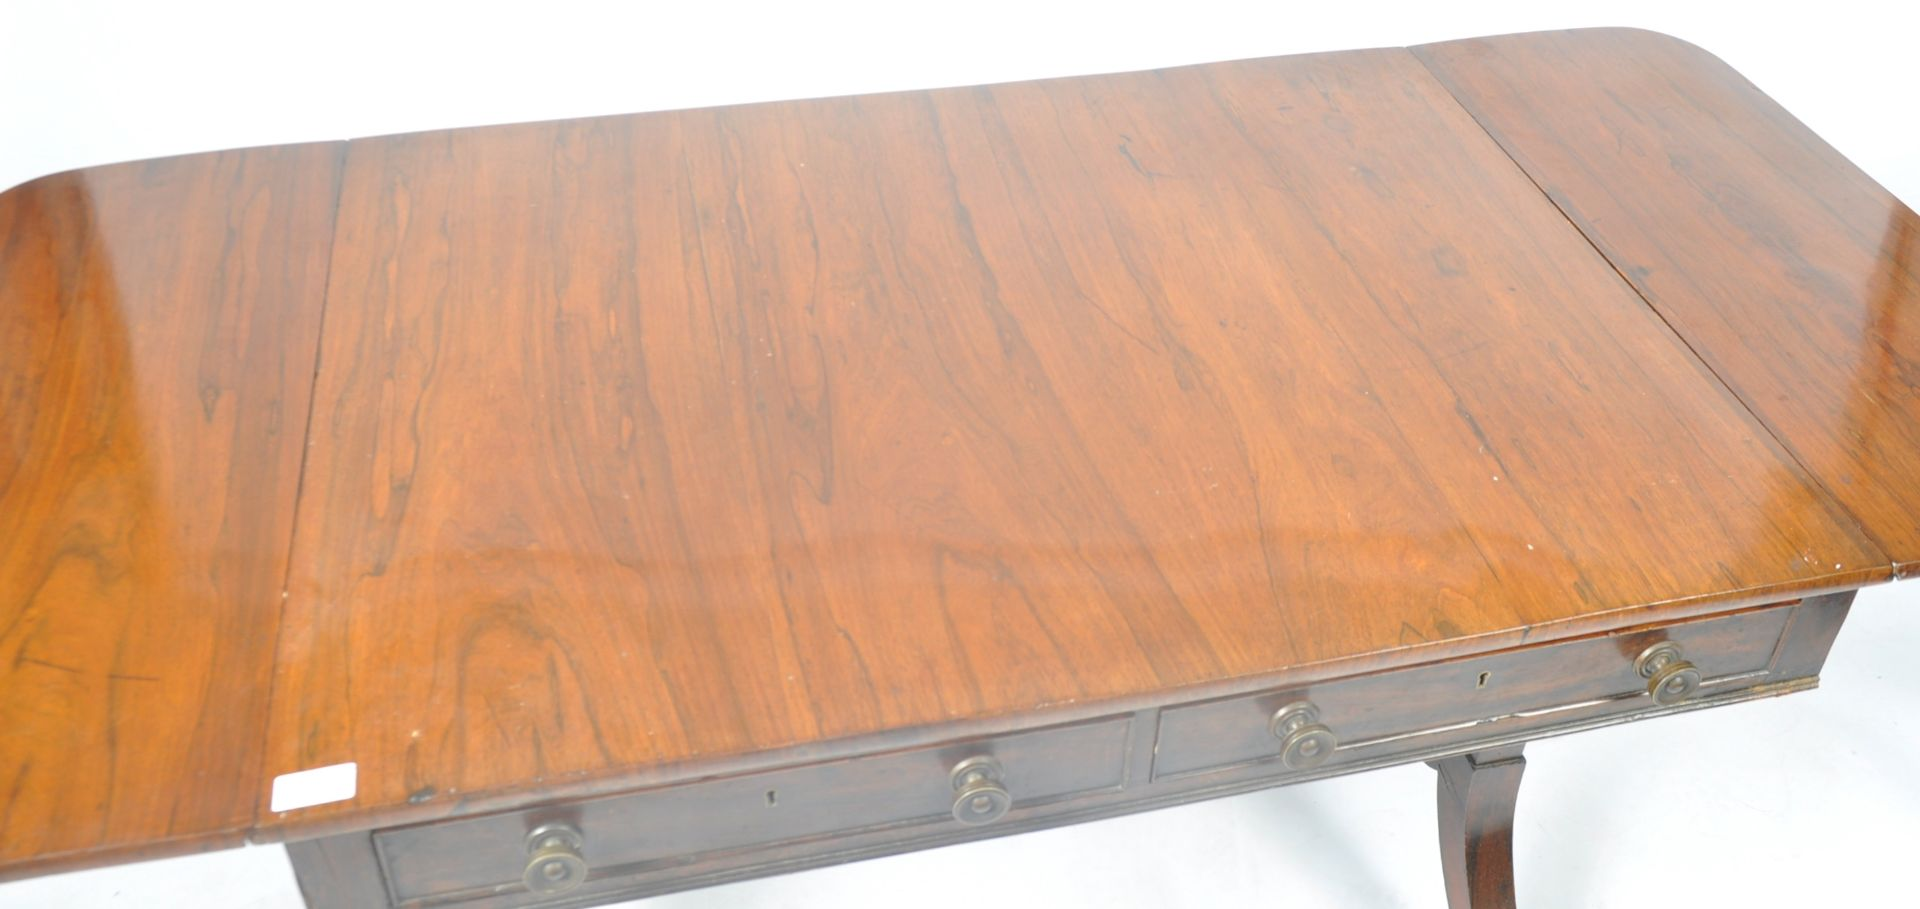 ANTIQUE ROSEWOOD REGENCY SOFA TABLE RETAILED BY HARRIS OF LONDON - Image 9 of 10